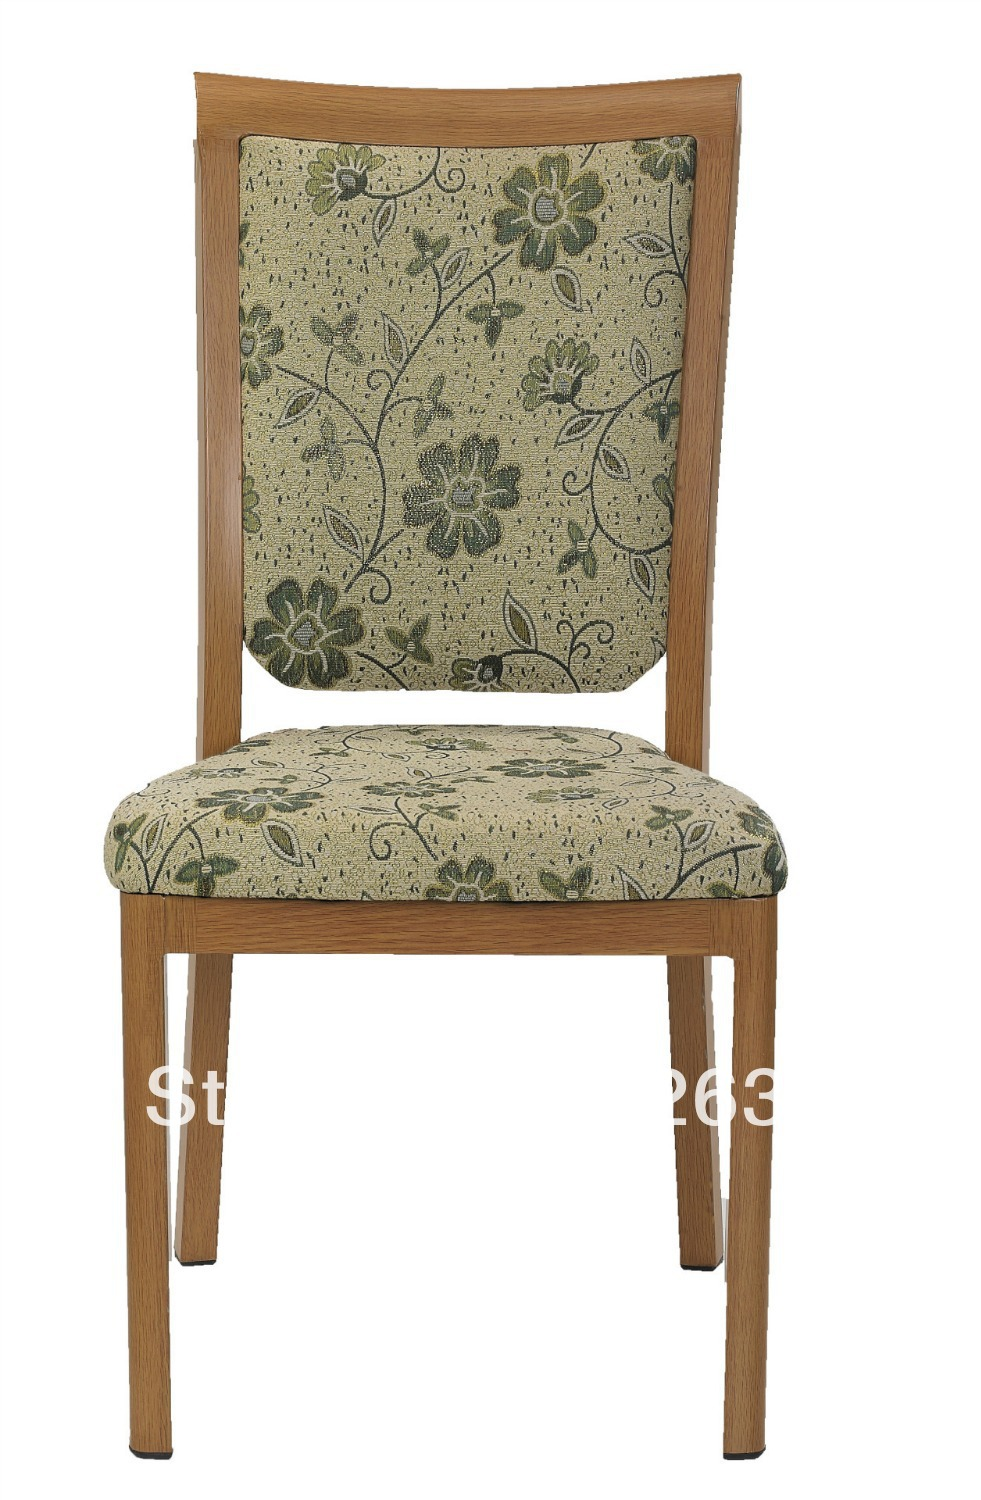 Stackable Wood Grain Aluminum Banquet Chair,heavy Duty Fabric With High Rub Resistance,comfortable